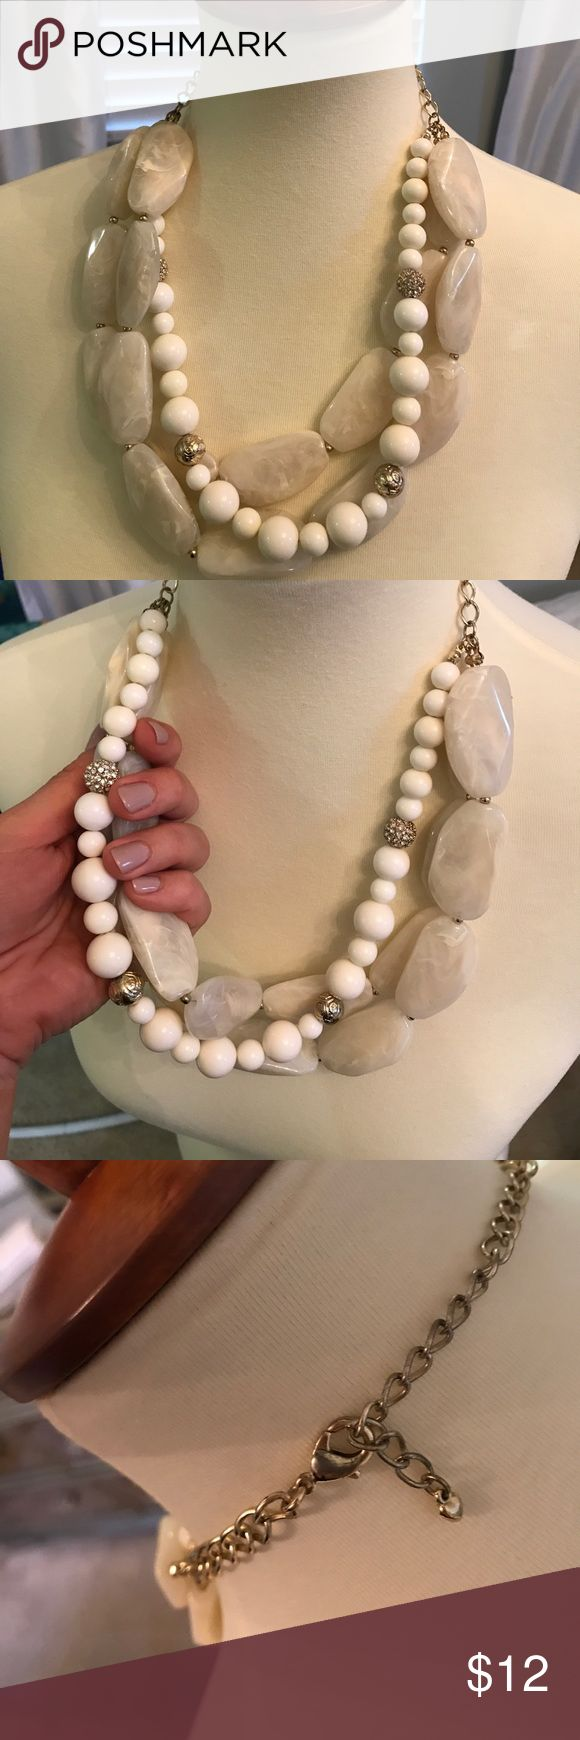 Beautiful white statement necklace From Francesca's. so stunning. Receive compliments every time. Statement piece Francesca's Collections Jewelry Necklaces